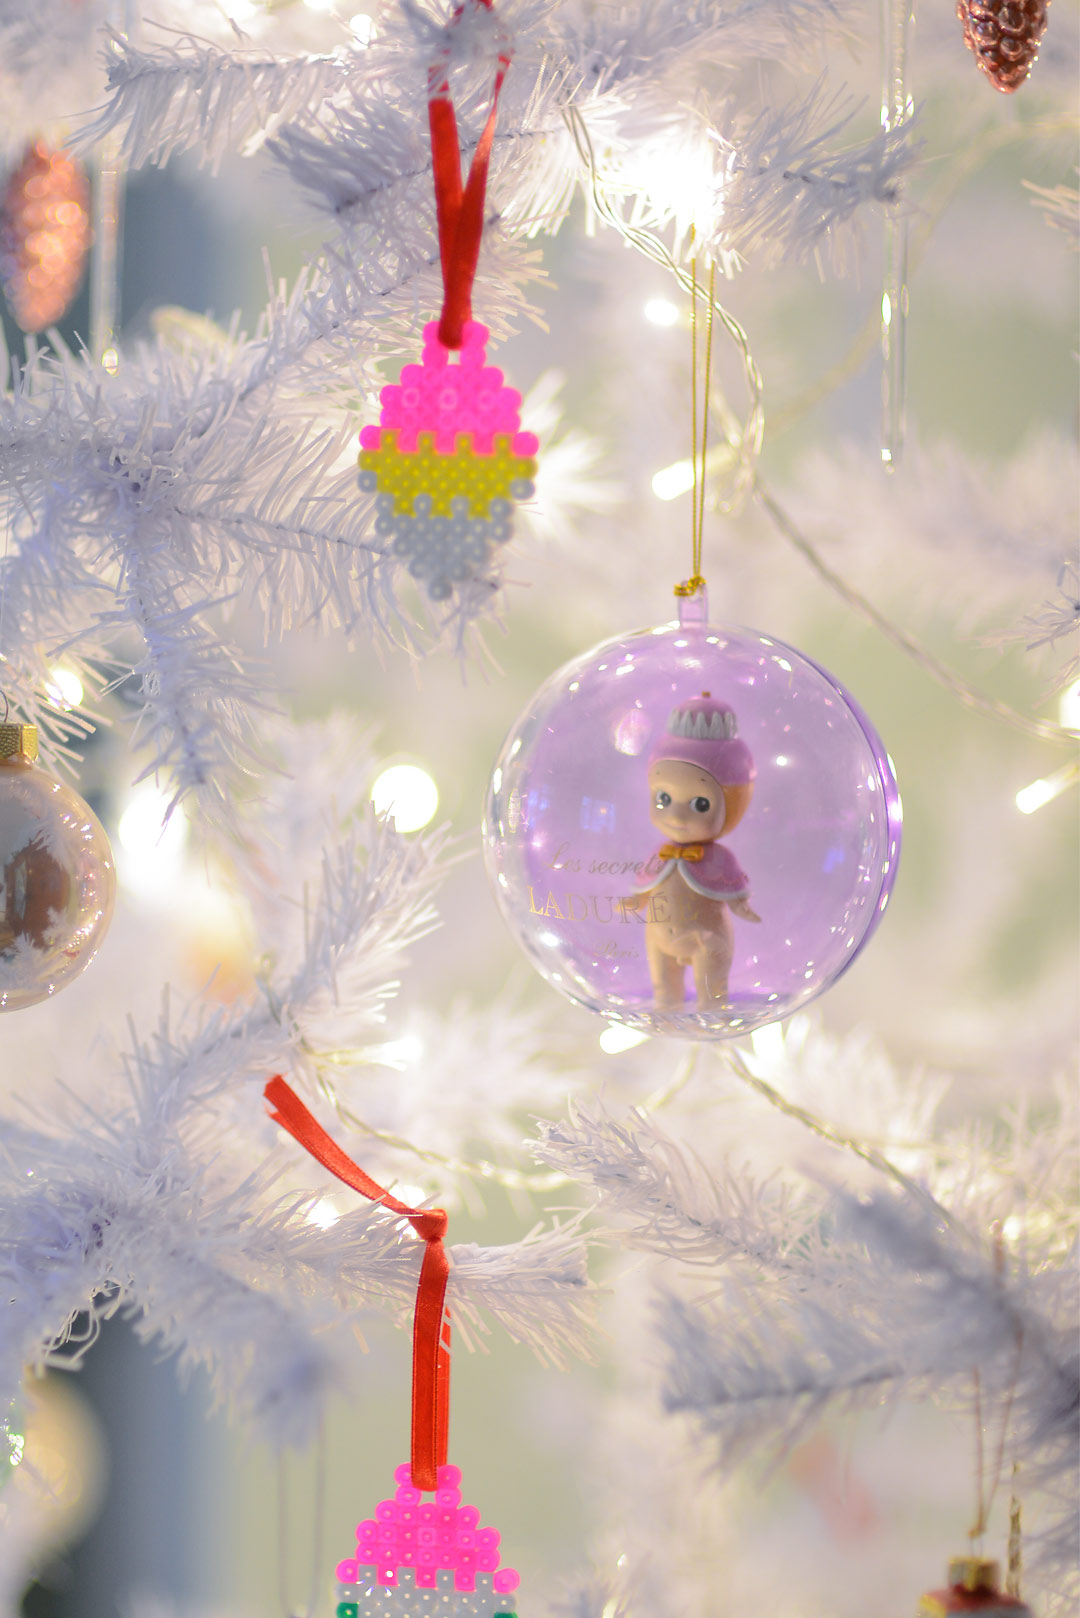 Beautiful pastel colored ornaments in a white Christmas tree